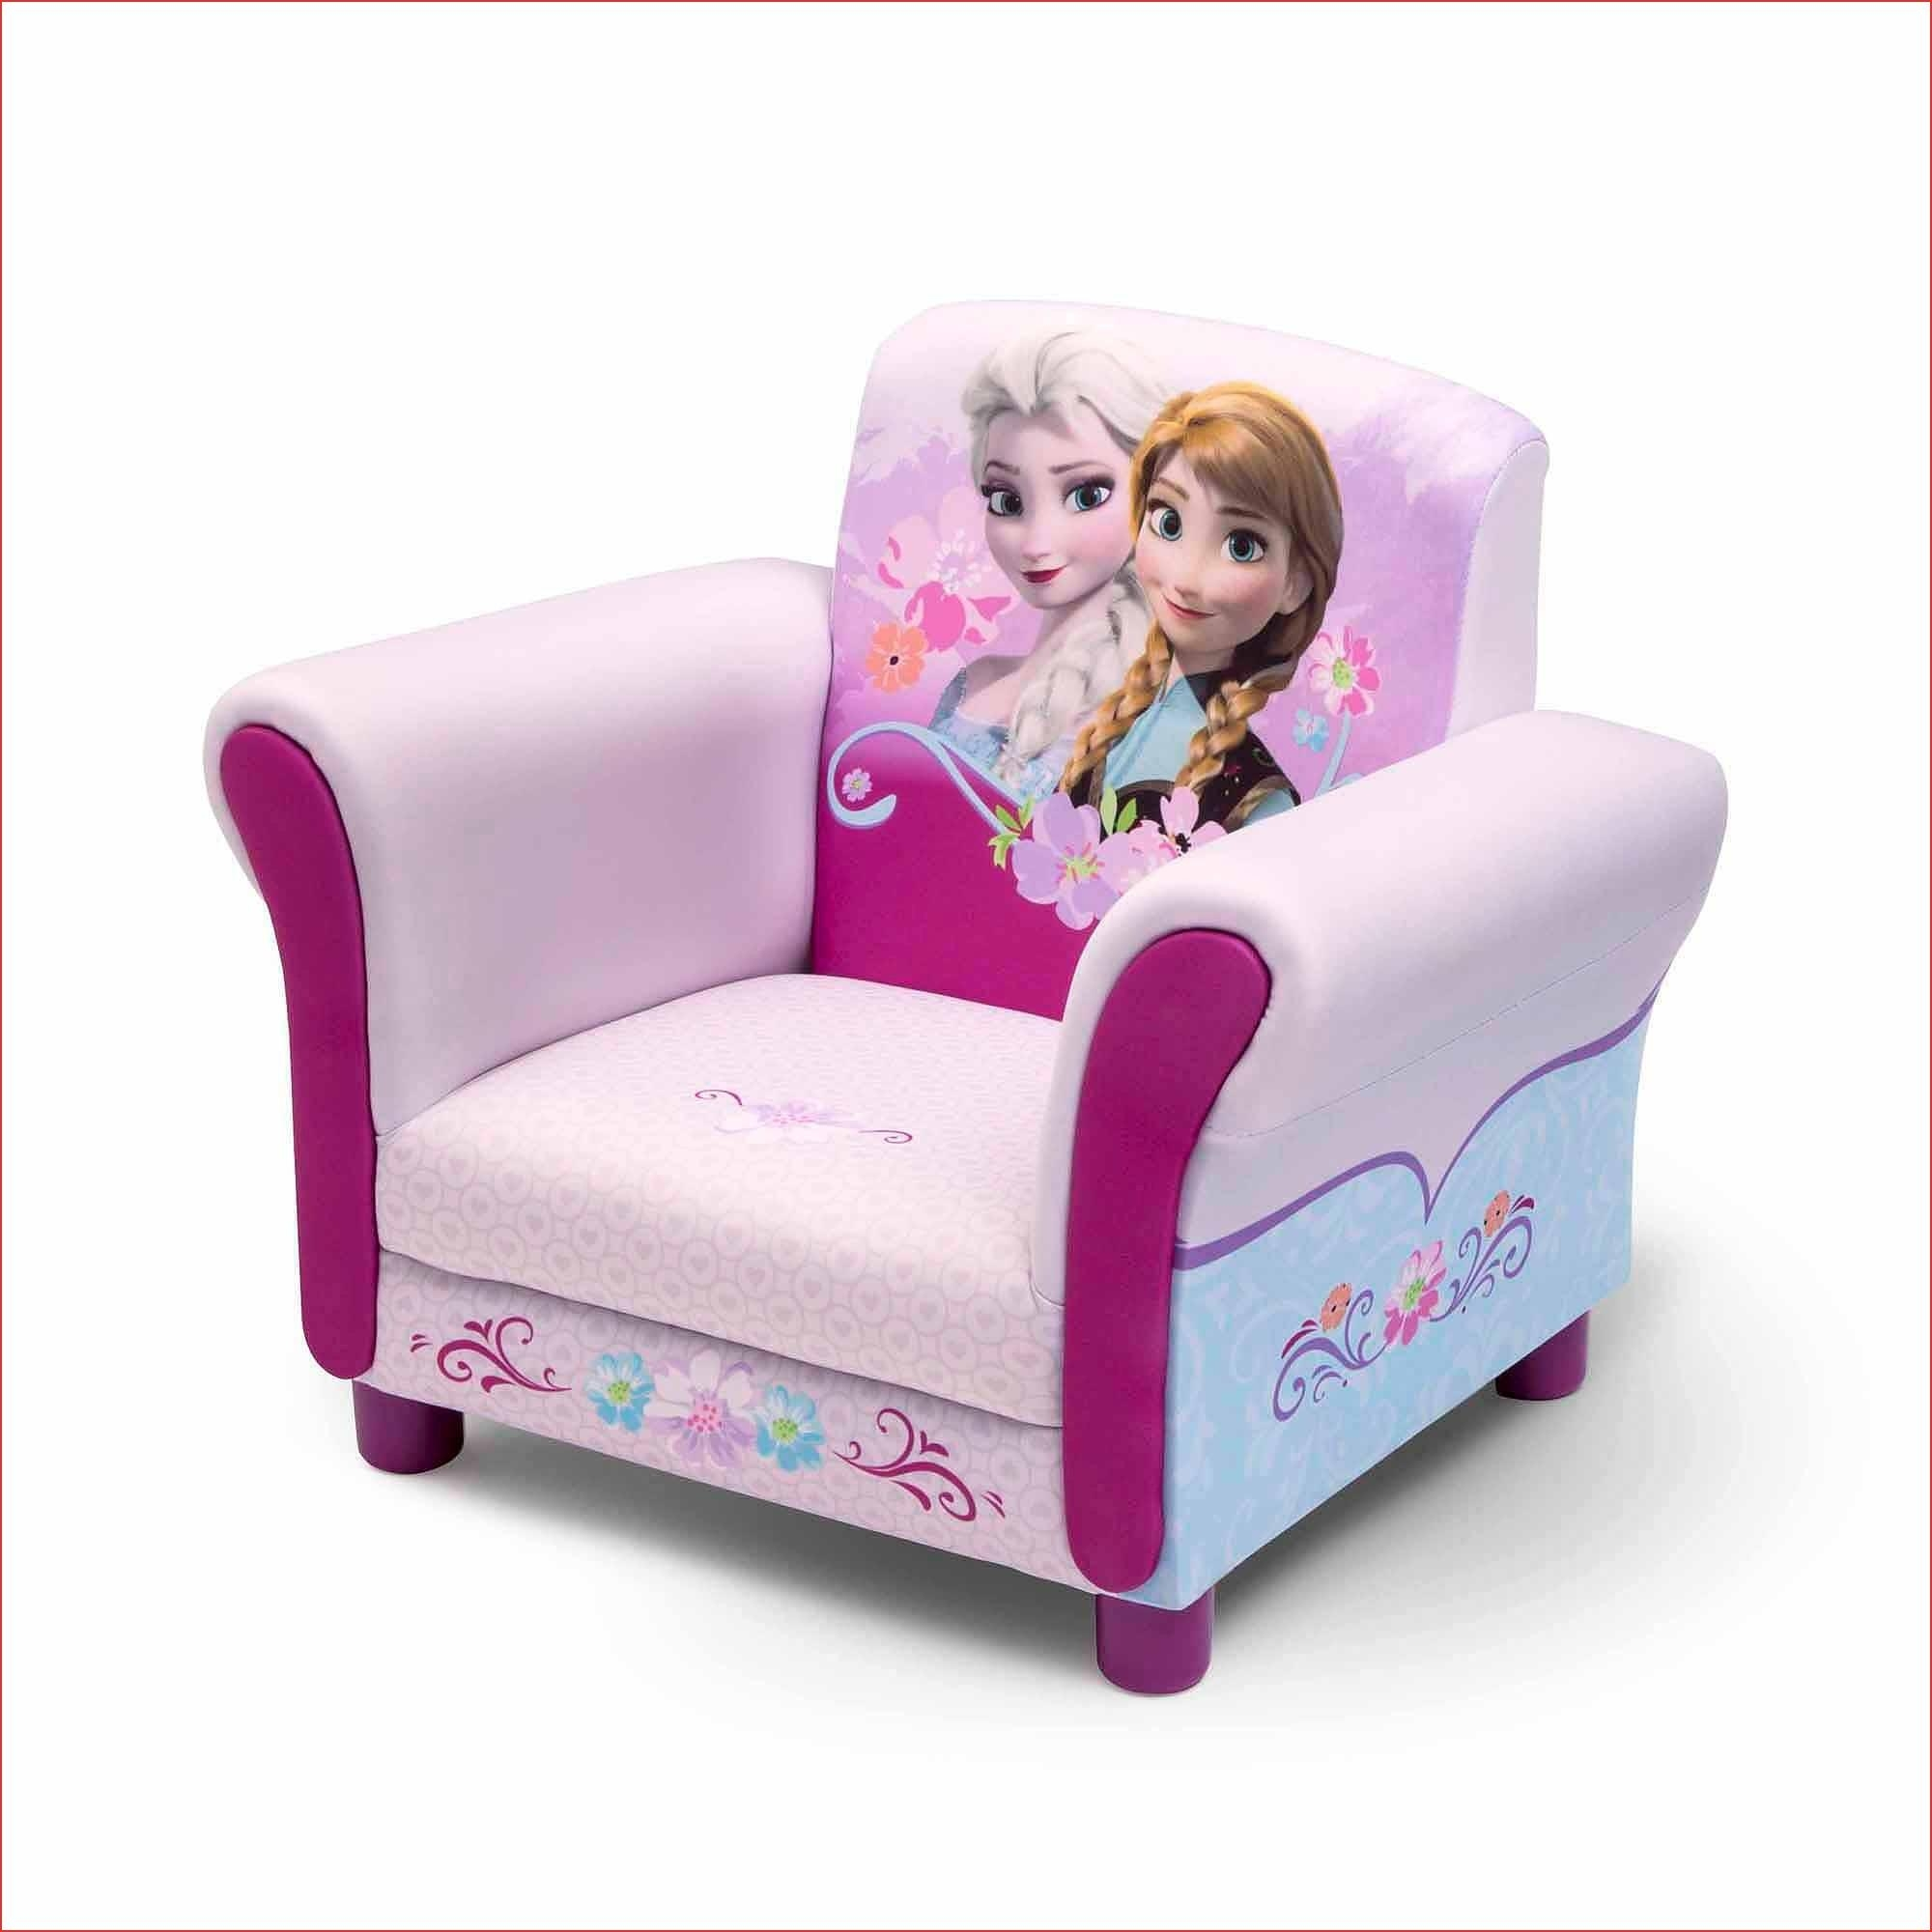 personalized little kid chair discount camping chairs 20 top kids and sofas sofa ideas